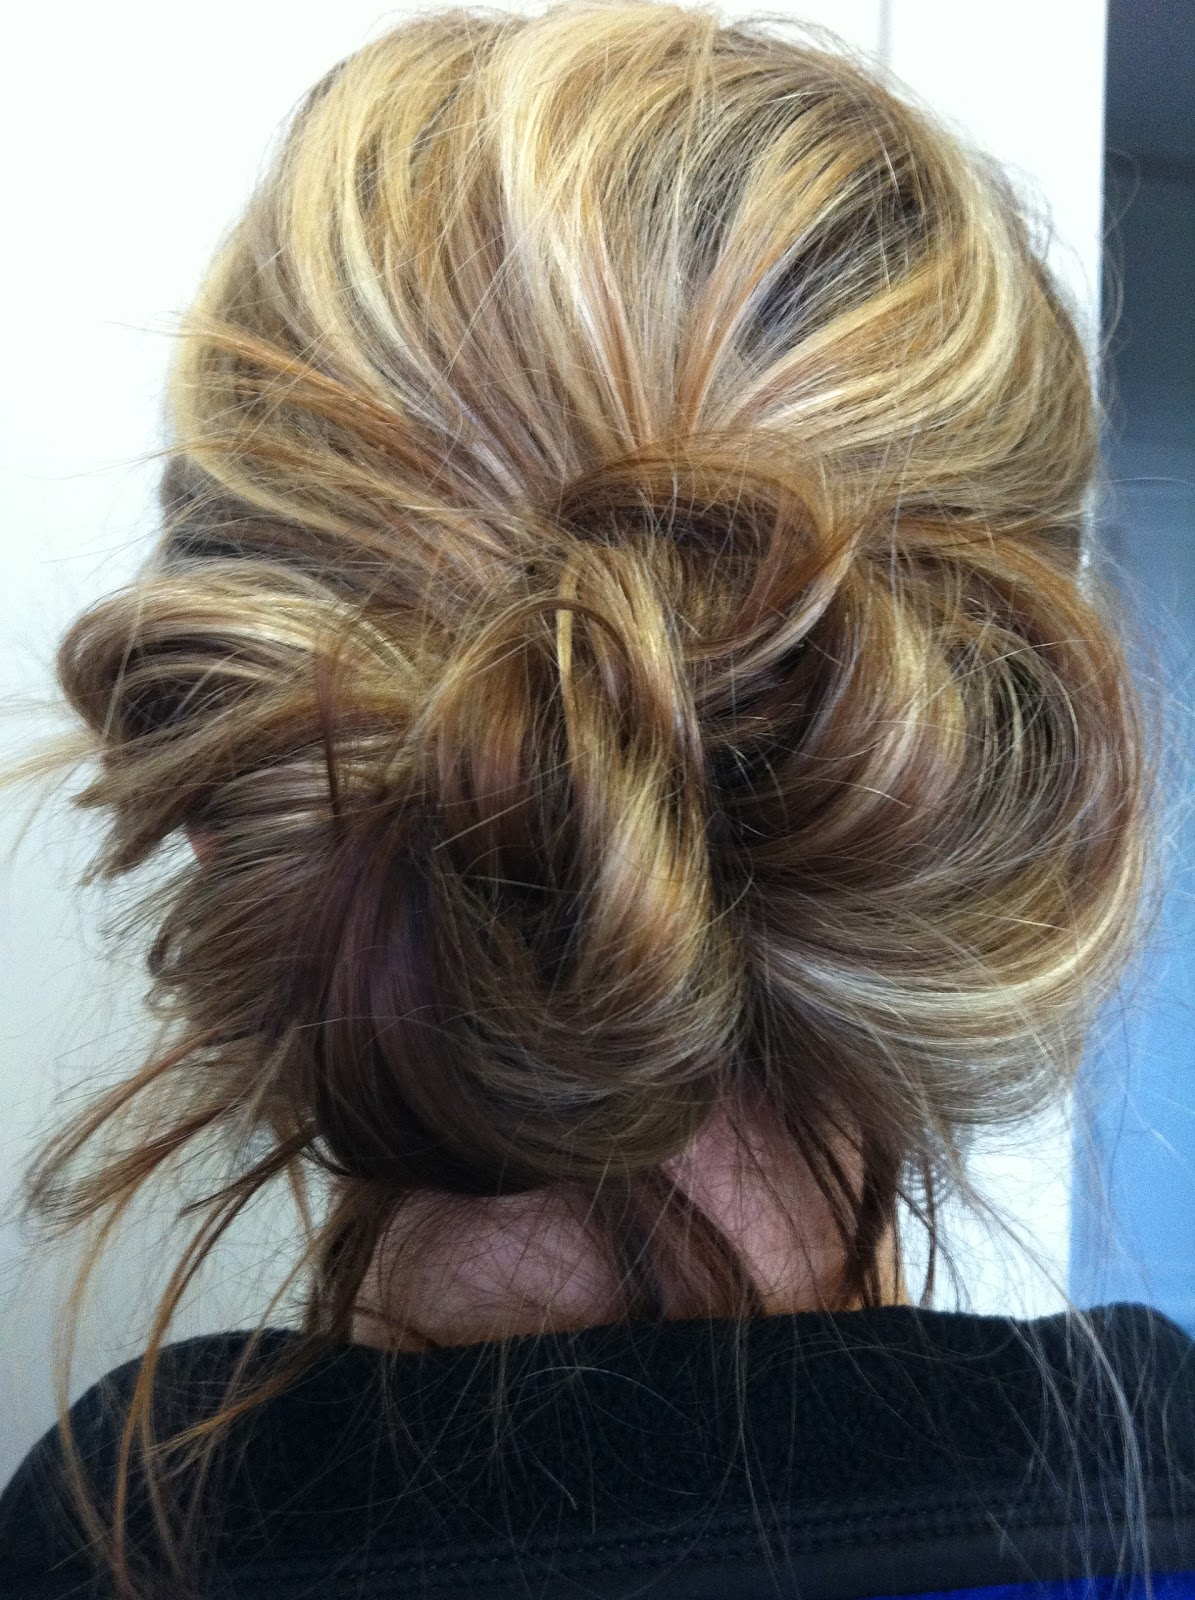 Bye Bye Beehive │ A Hairstyle Blog: My Messy Bun As Of Late